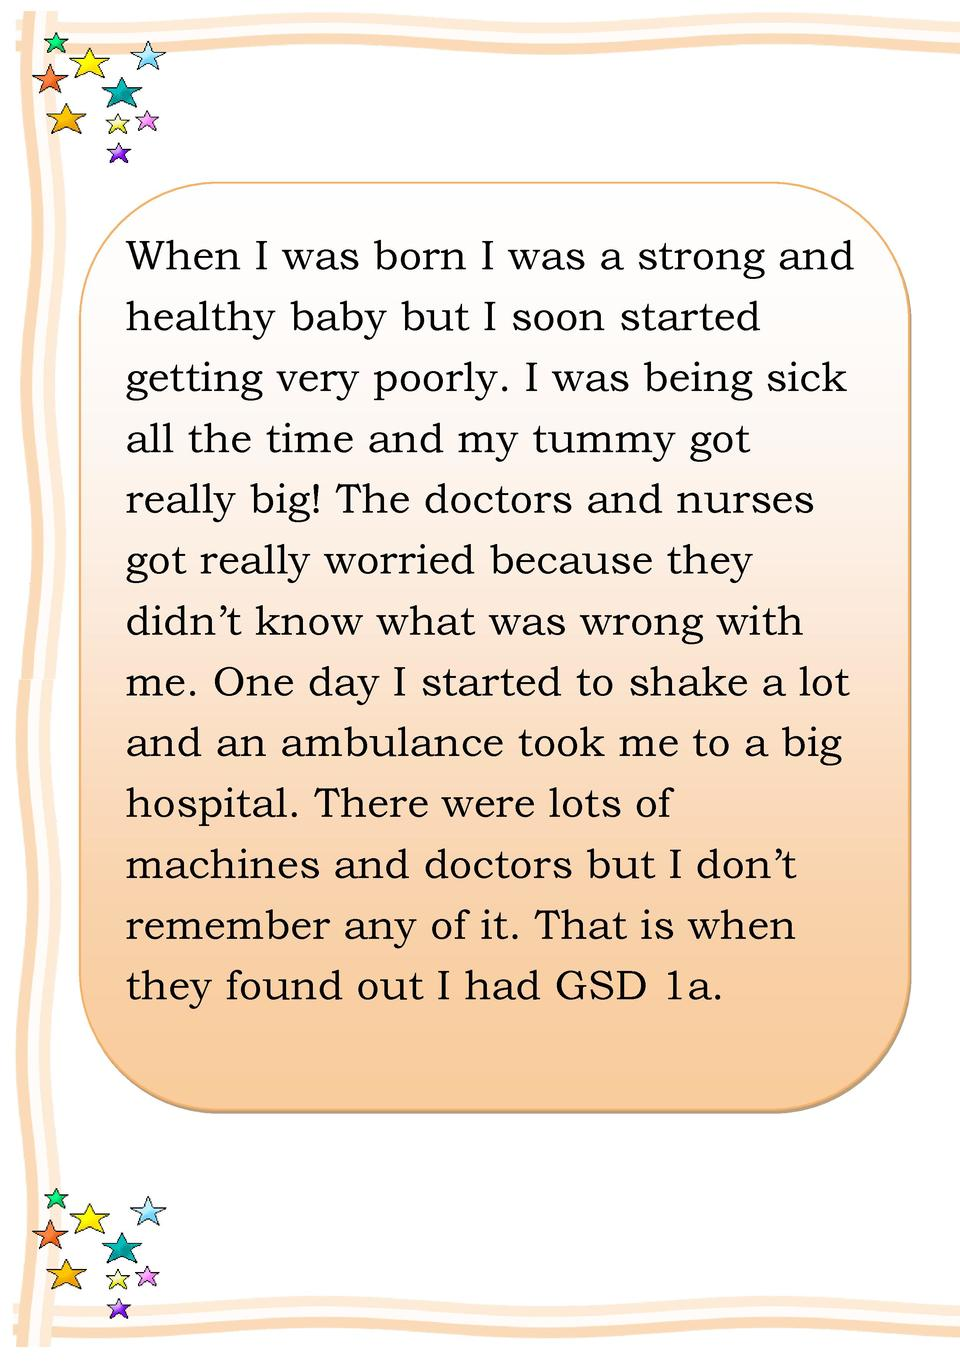 When I was born I was a strong and healthy baby but I soon started getting very poorly. I was being sick all the time and ...